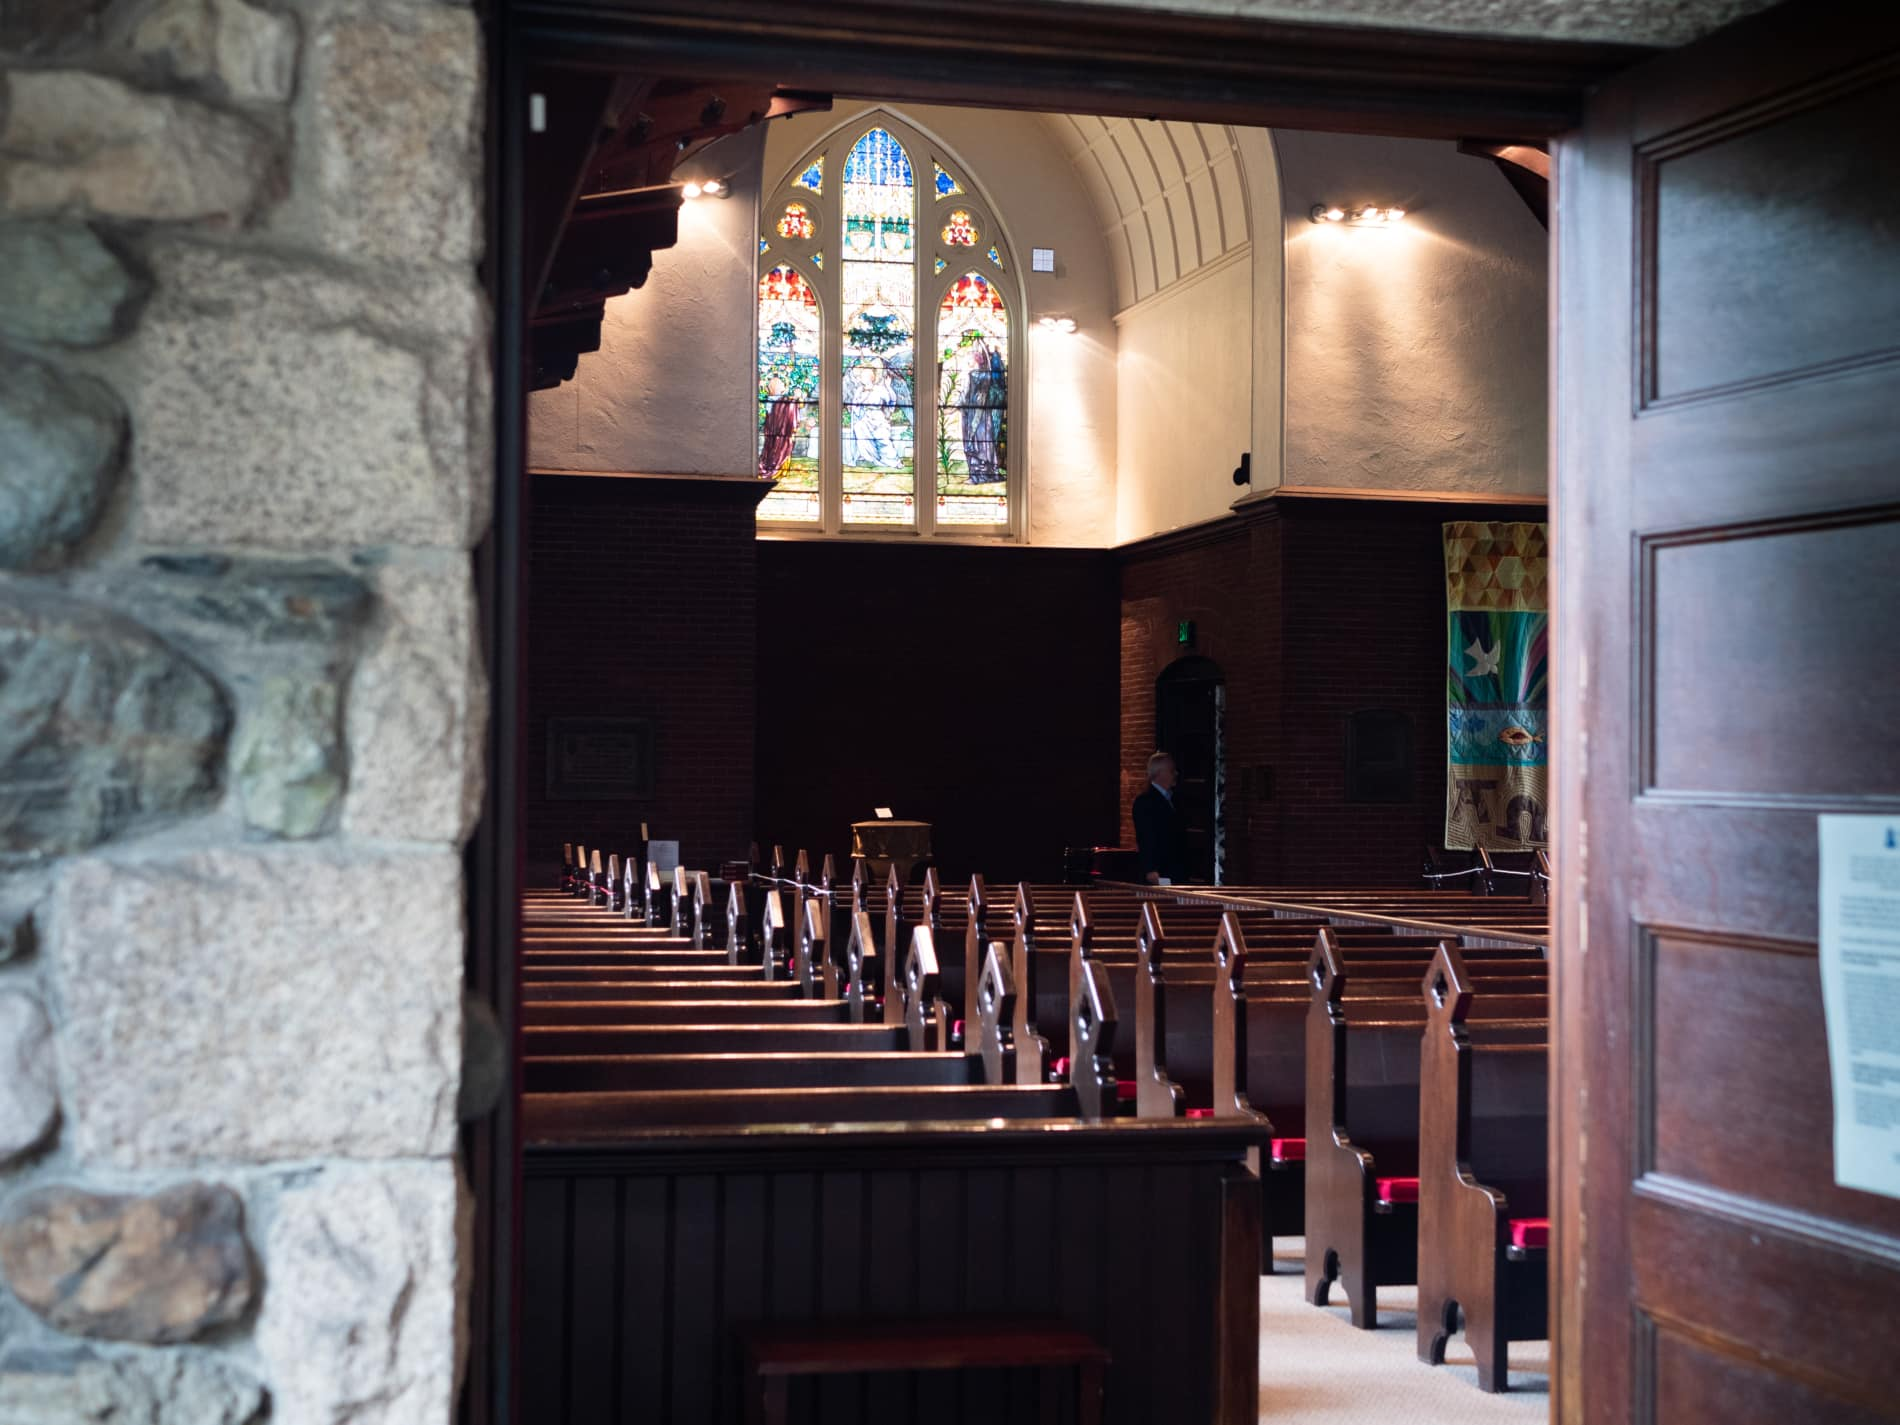 A view from an open door into the sanctuary